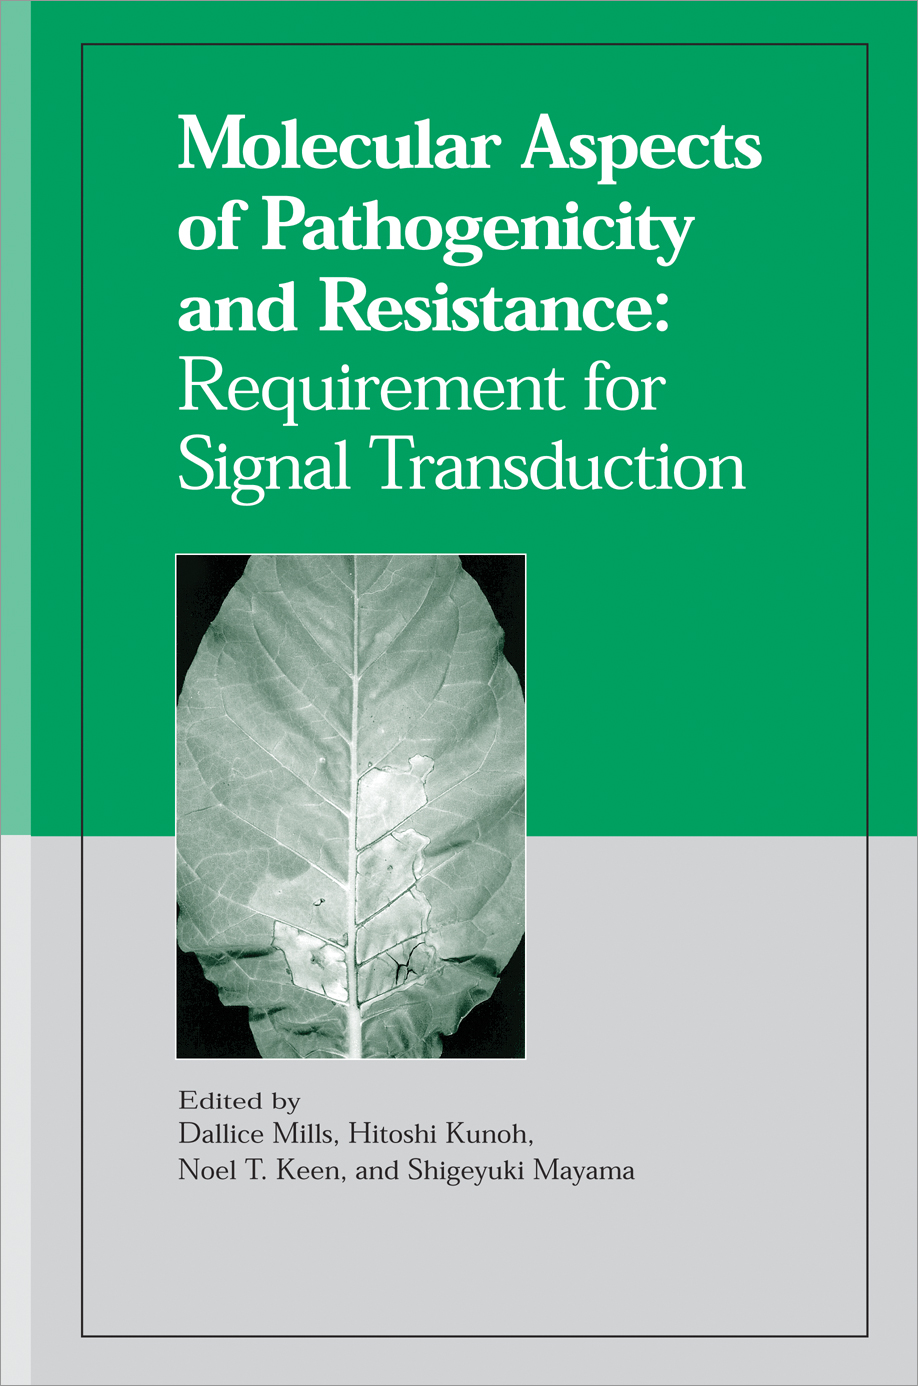 Molecular Aspects of Pathogenicity and Resistance: Requirement for Signal Transduction